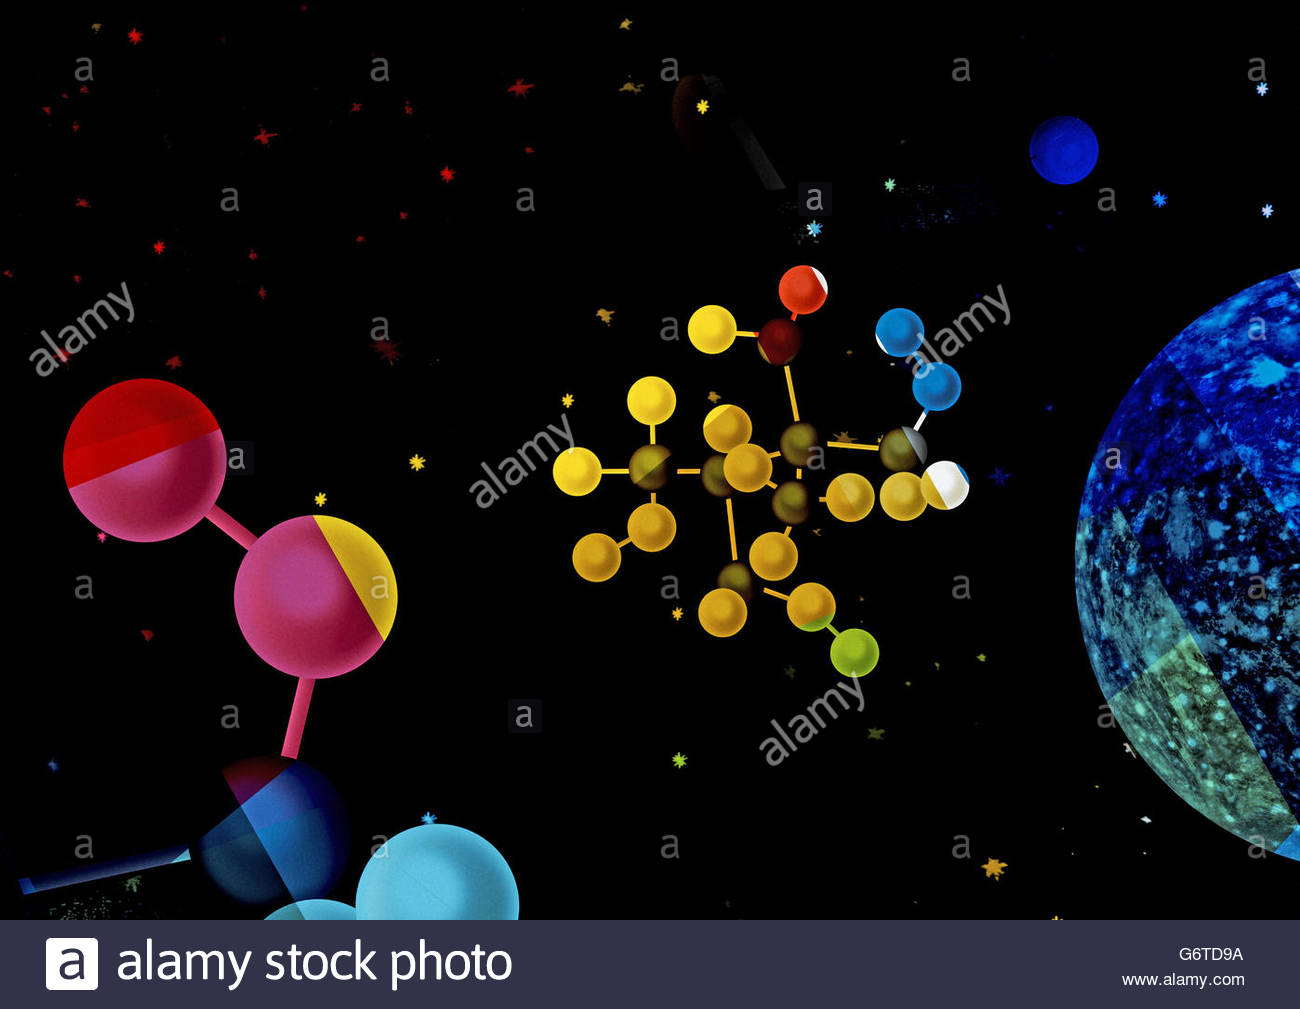 Retro atomic space illustration - Stock Image